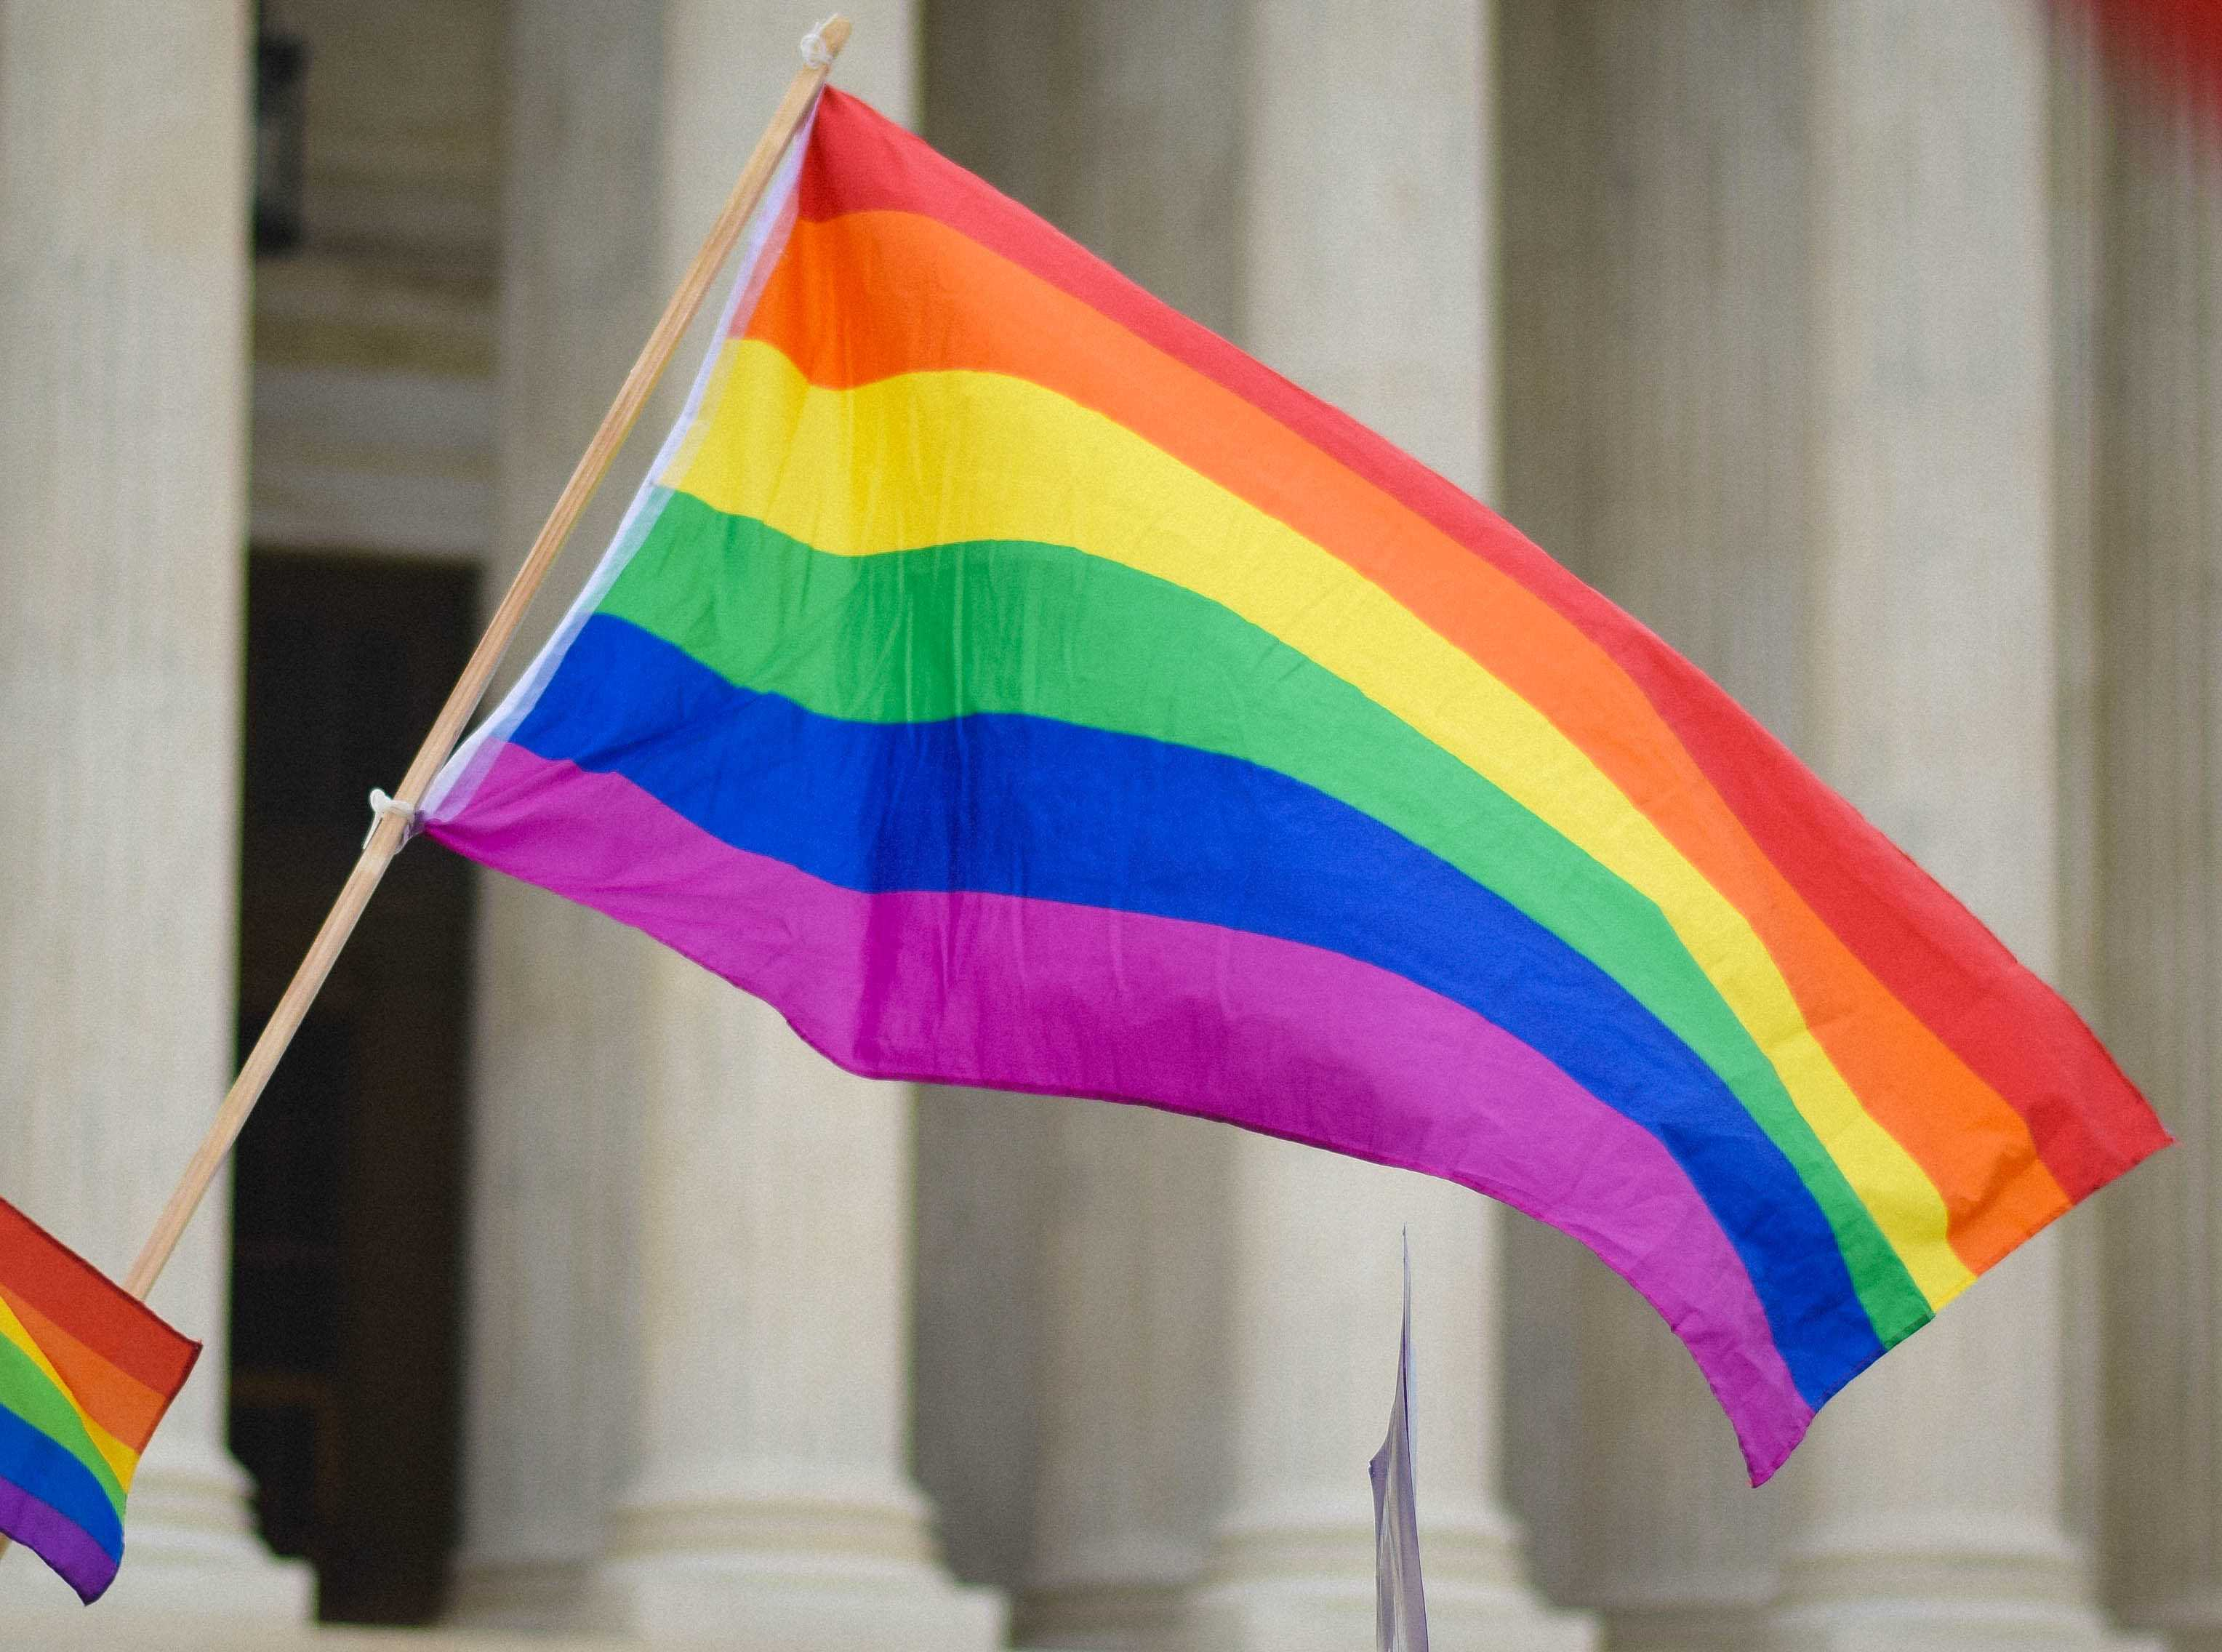 LGBT supporters celebrate the Obergefell vs Hodges Supreme Court ruling that made gay marriage legal last June, but not much progress for LGBT rights has been made since then.